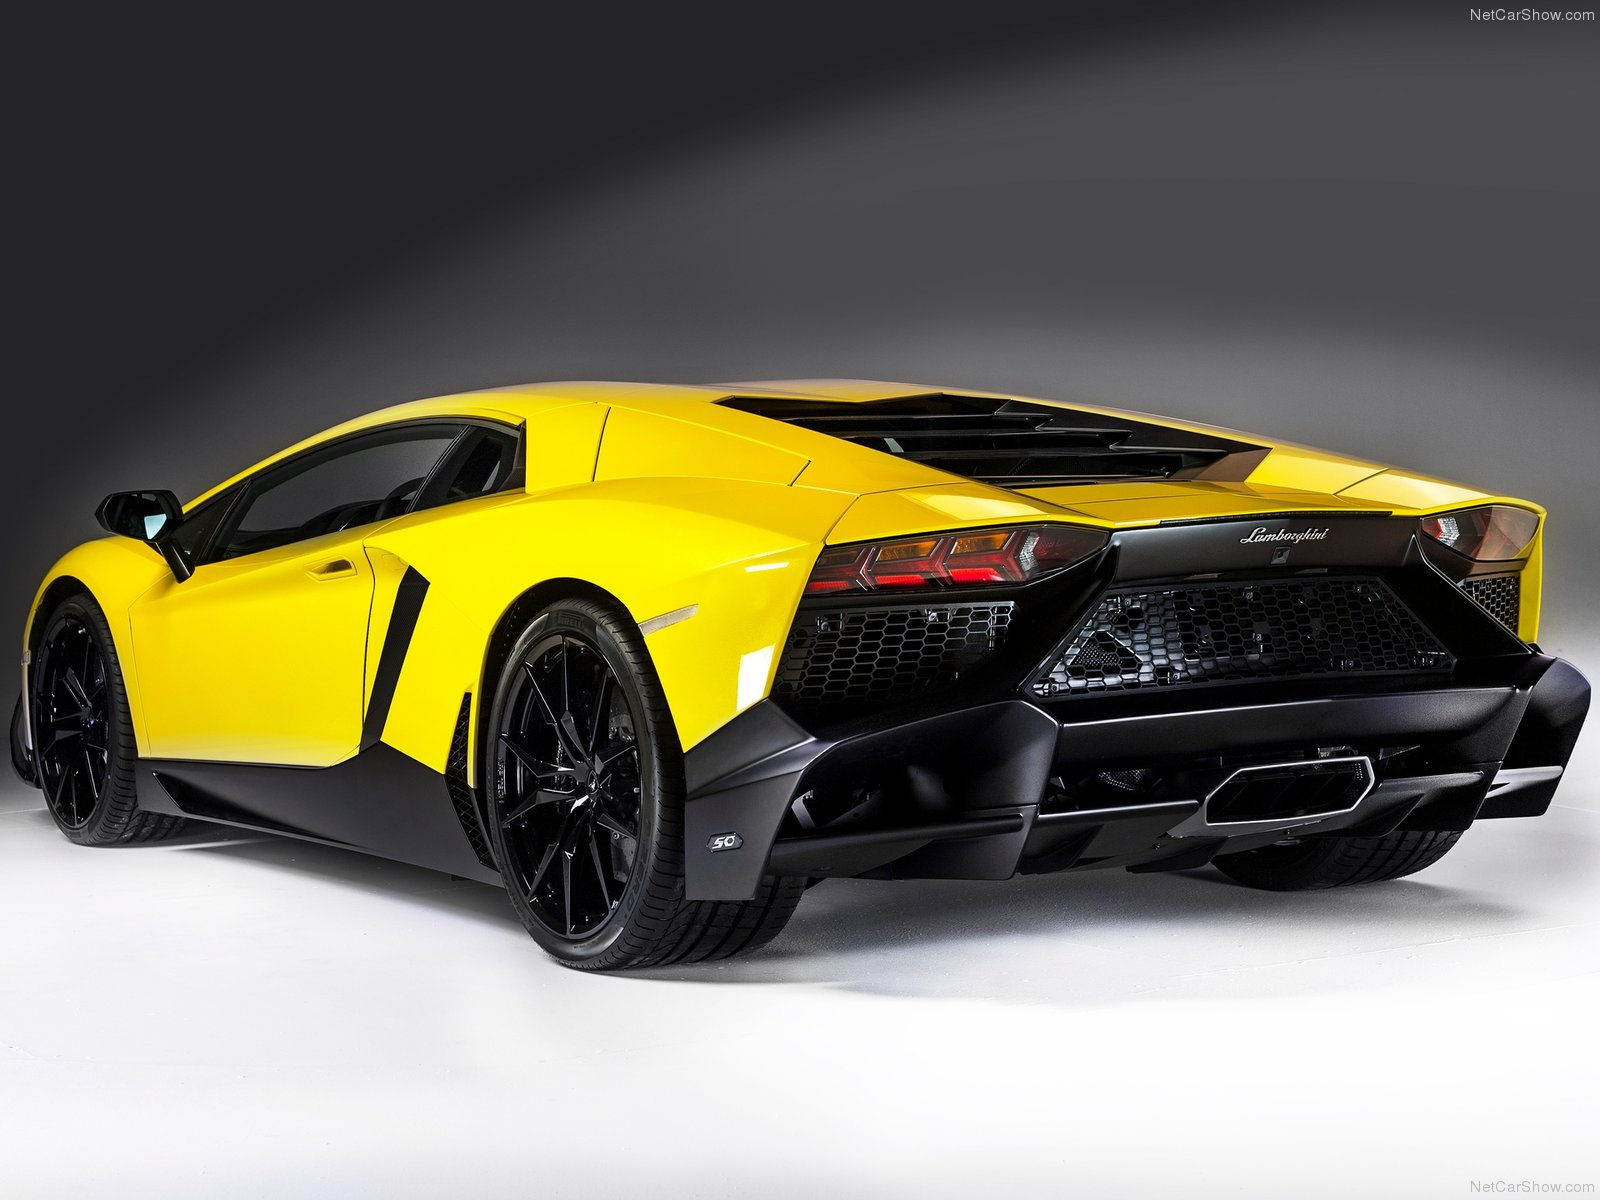 2013 Lamborghini Aventador LP720-4 50th Anniversary Review